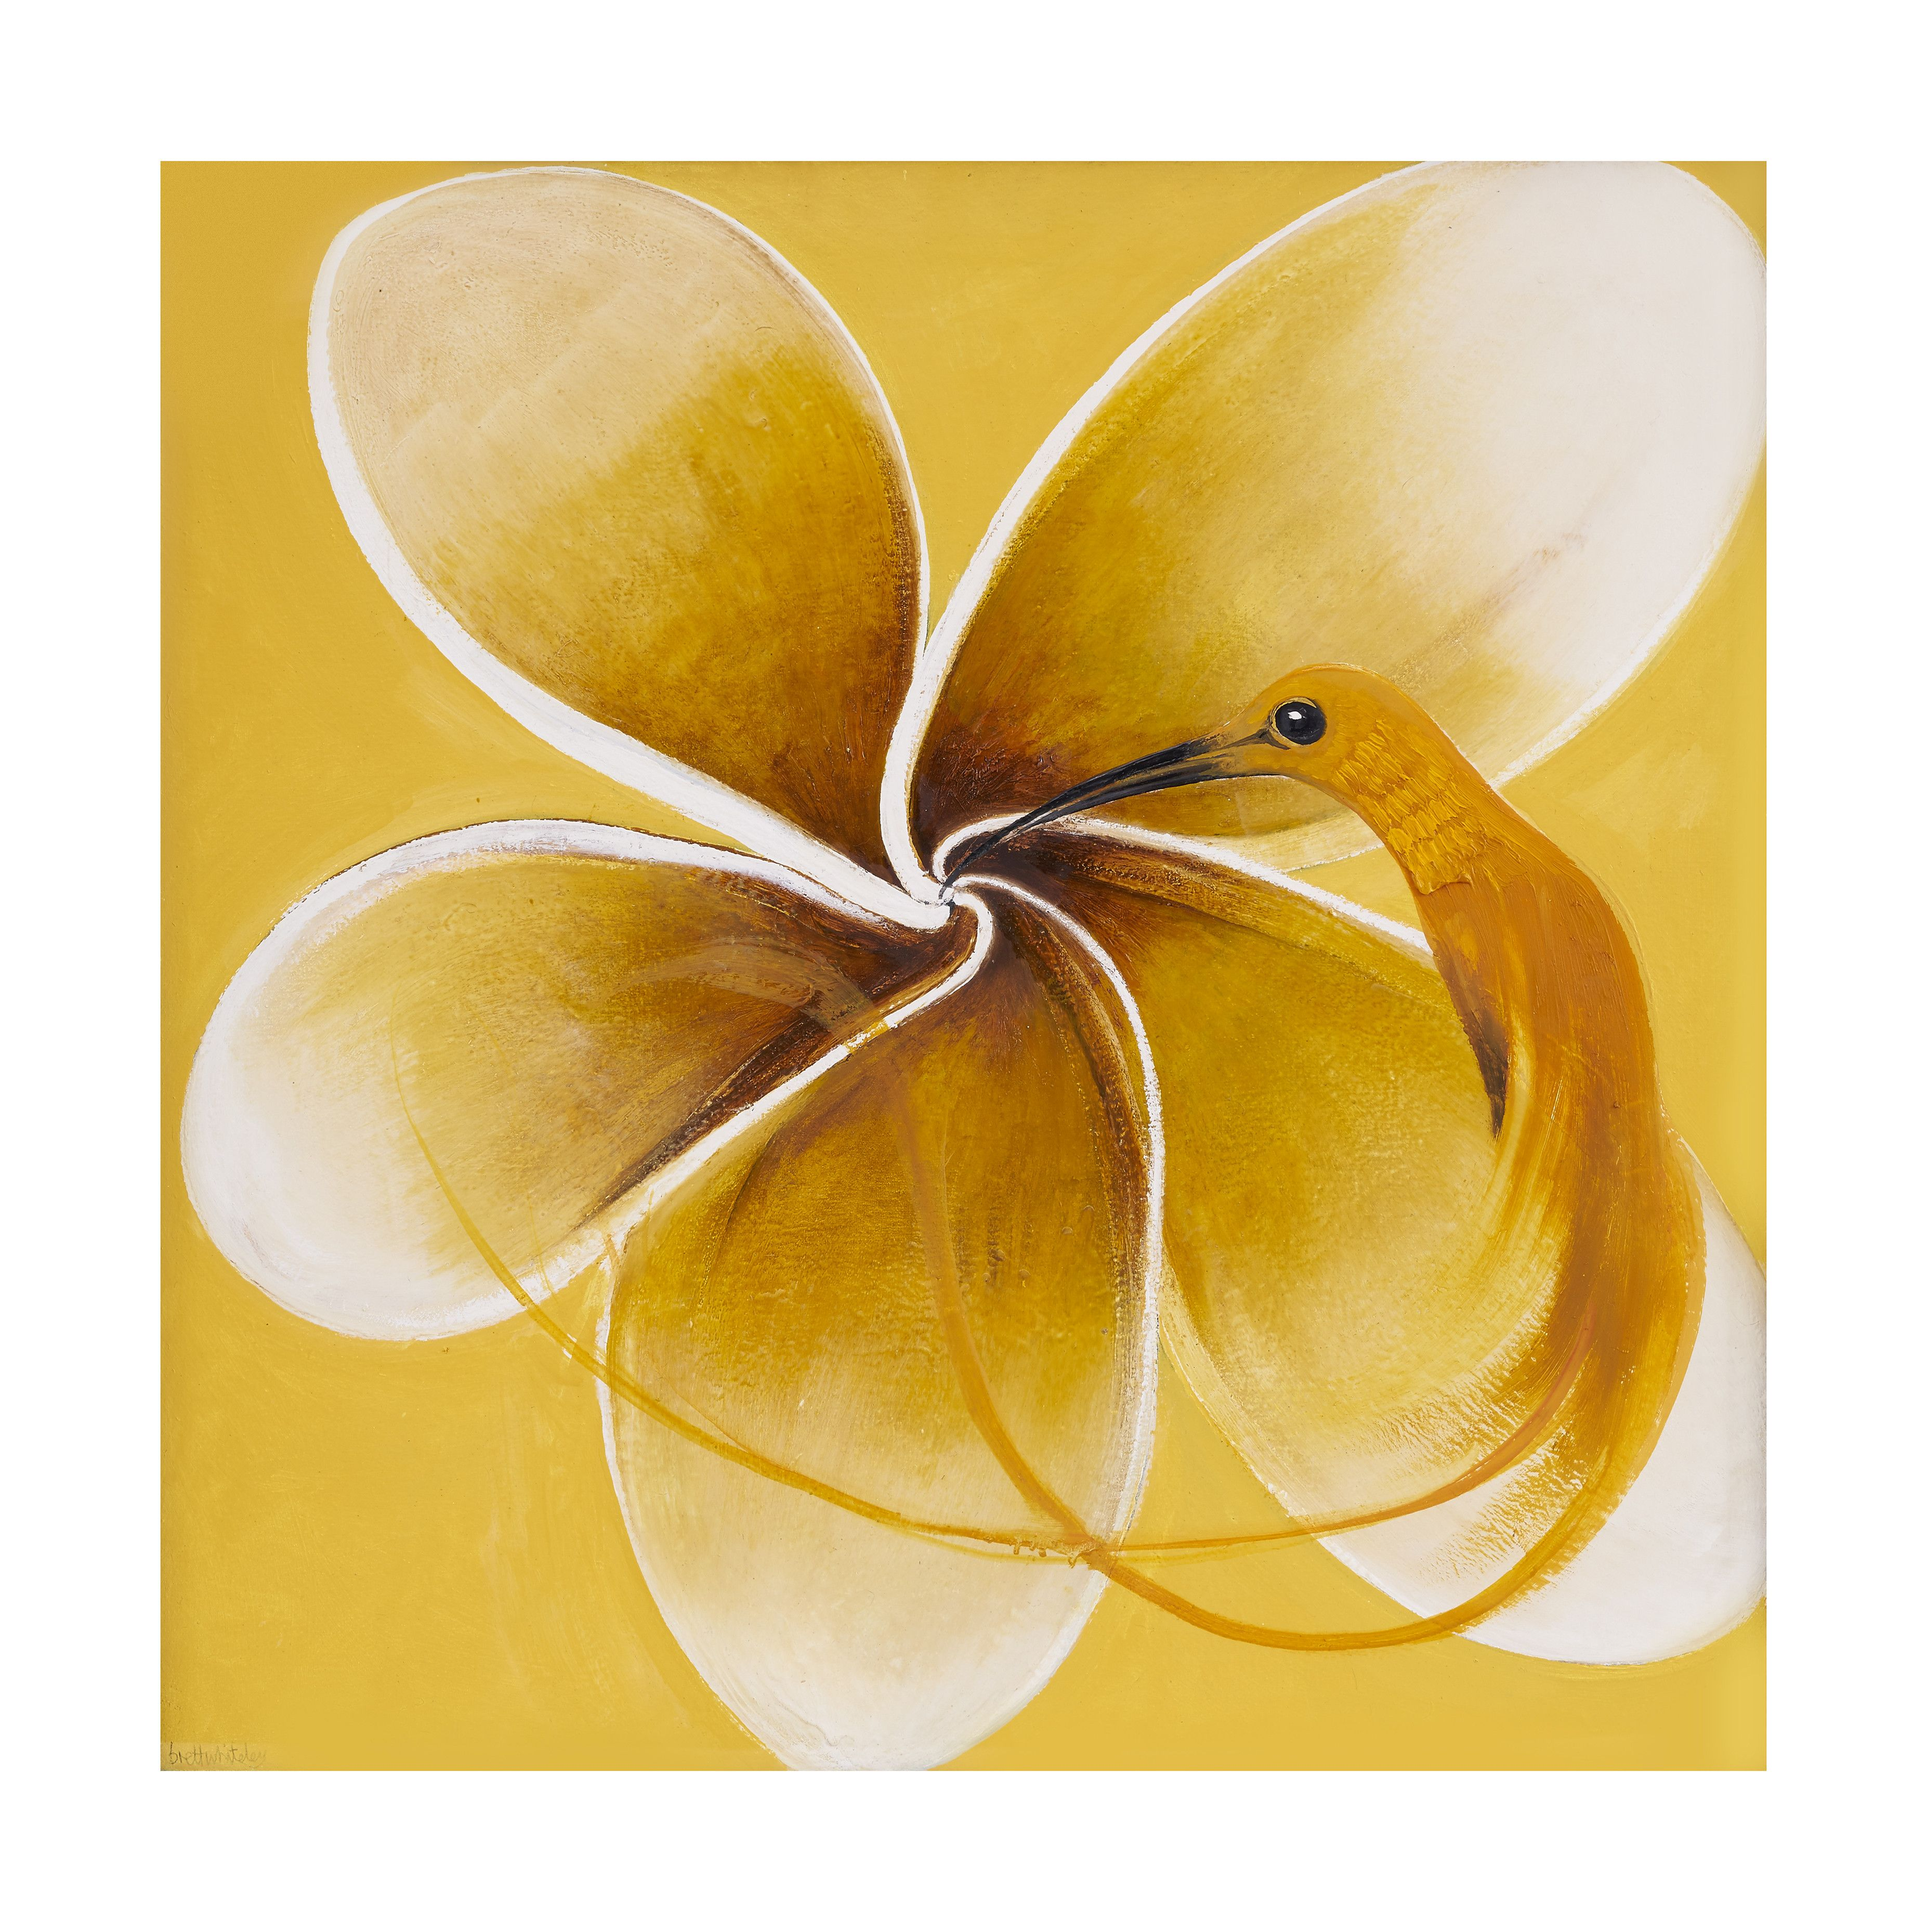 Hummingbird and Frangipani, a 1986 oil on board by Australian artist Brett Whiteley. It comes directly from its original owner to Bonhams, which estimates it at $280,000 to $350,000 in Australian dollars, or $210,000 to $260,000 in U.S. dollars.